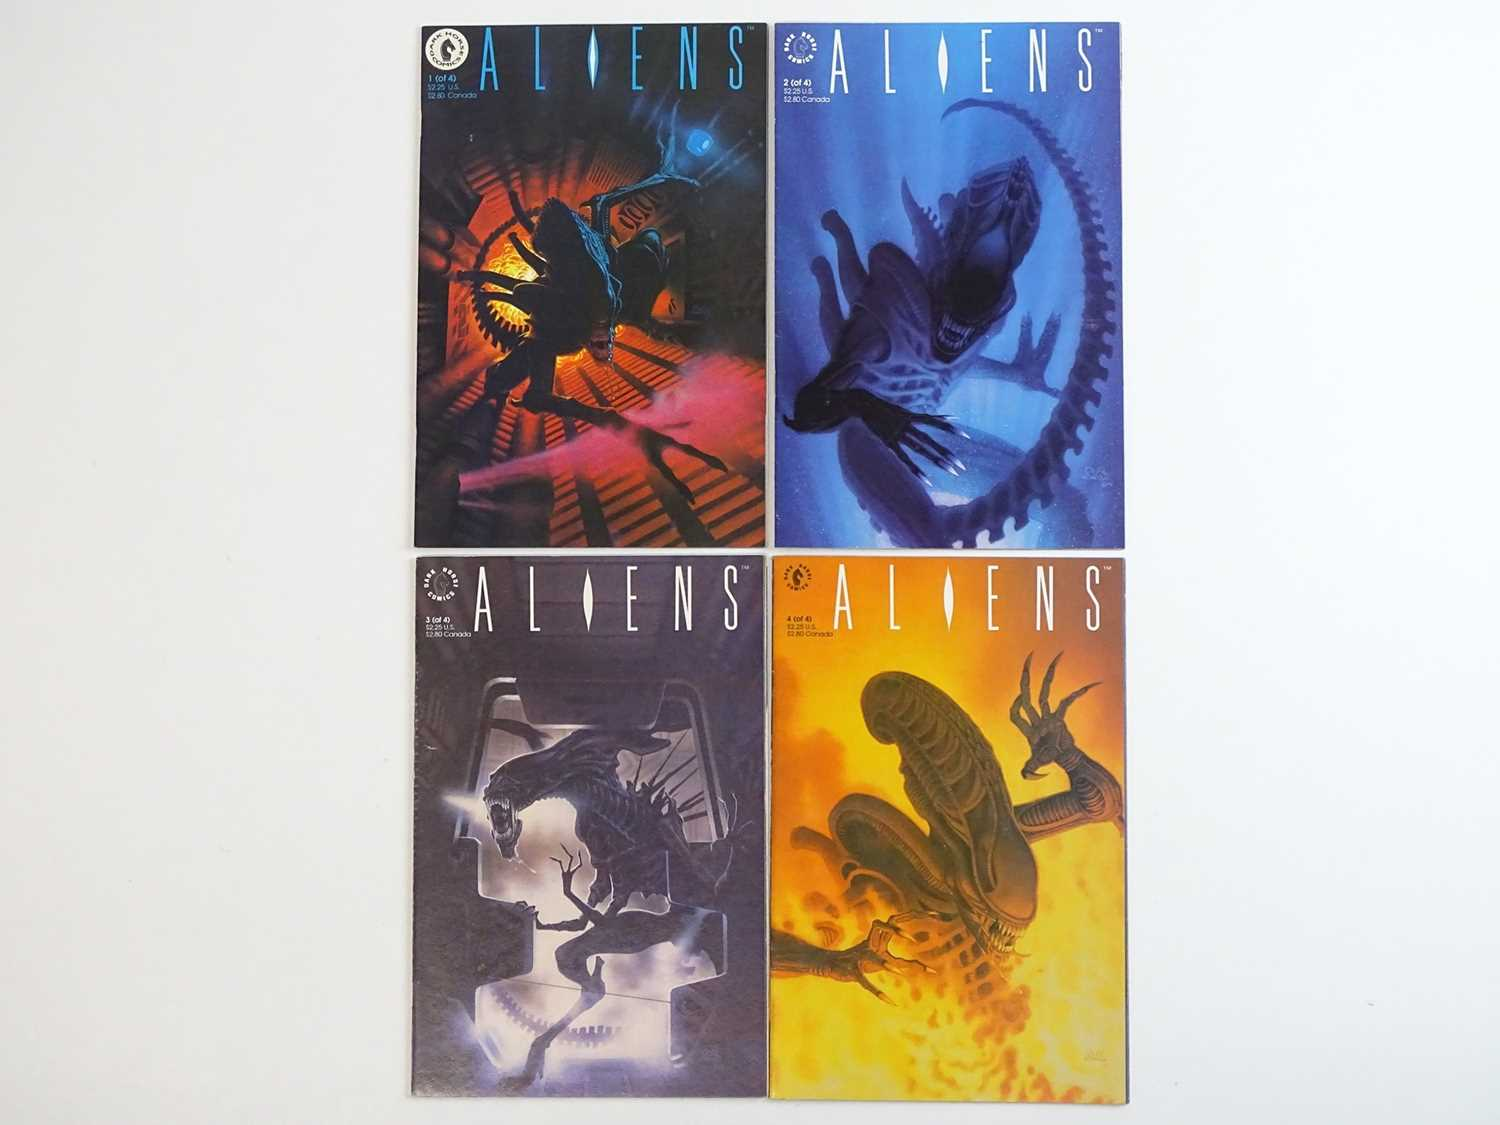 ALIENS #1, 2, 3, 4 - (4 in Lot) - (1989/90 - DARK HORSE) - ALL First Printings - Complete 4 x